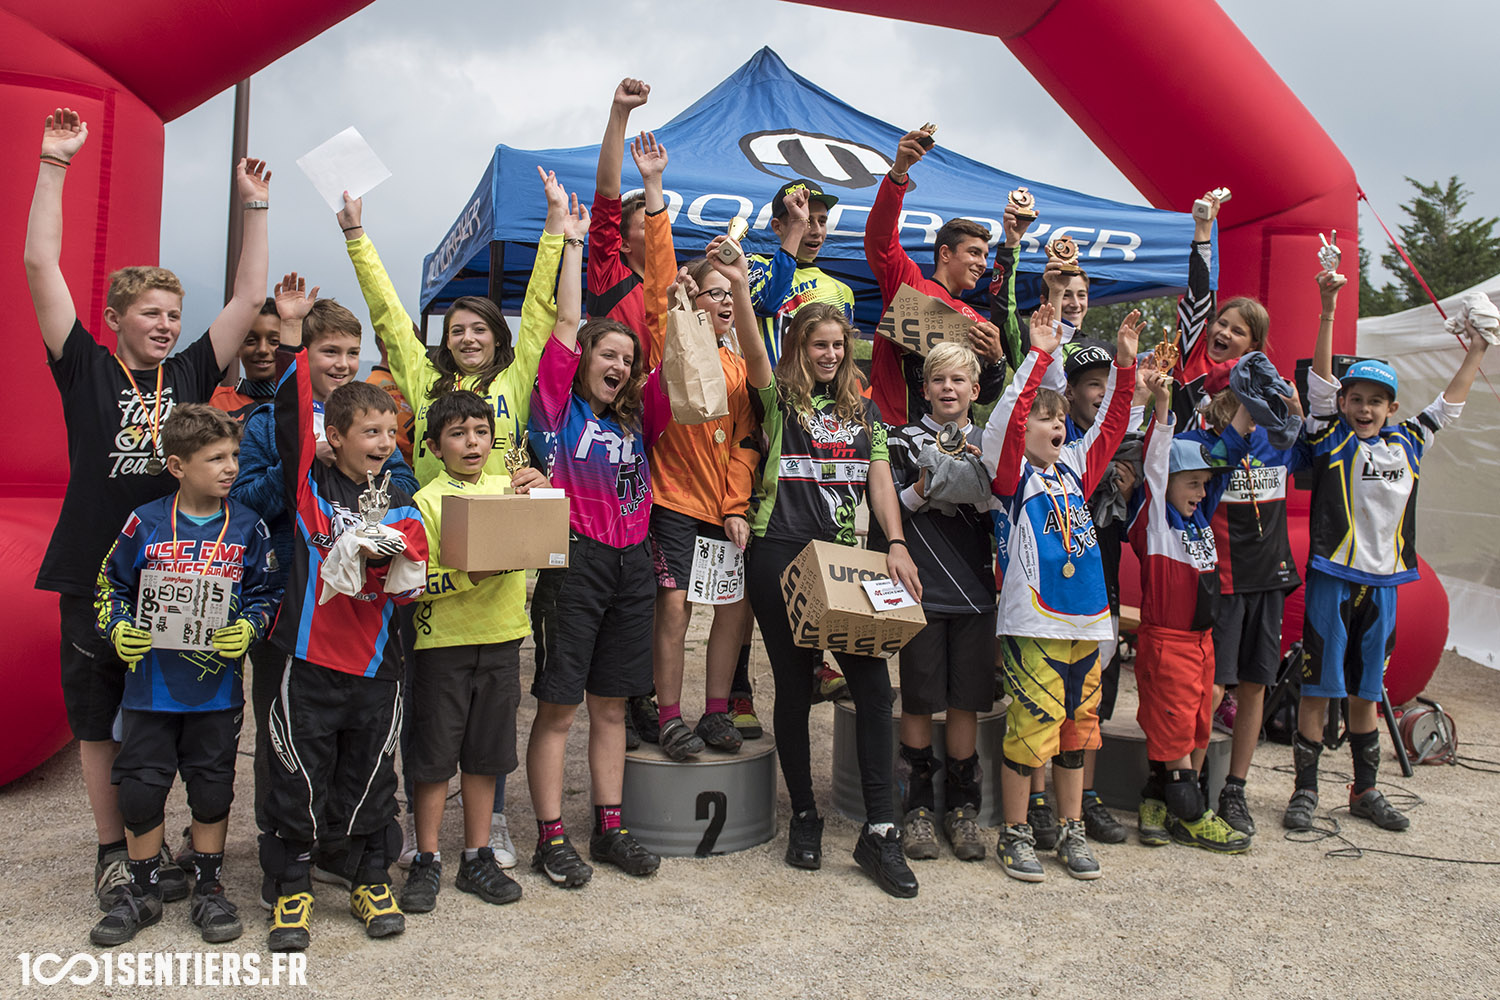 1001-enduro-kid-tour-2016-riders